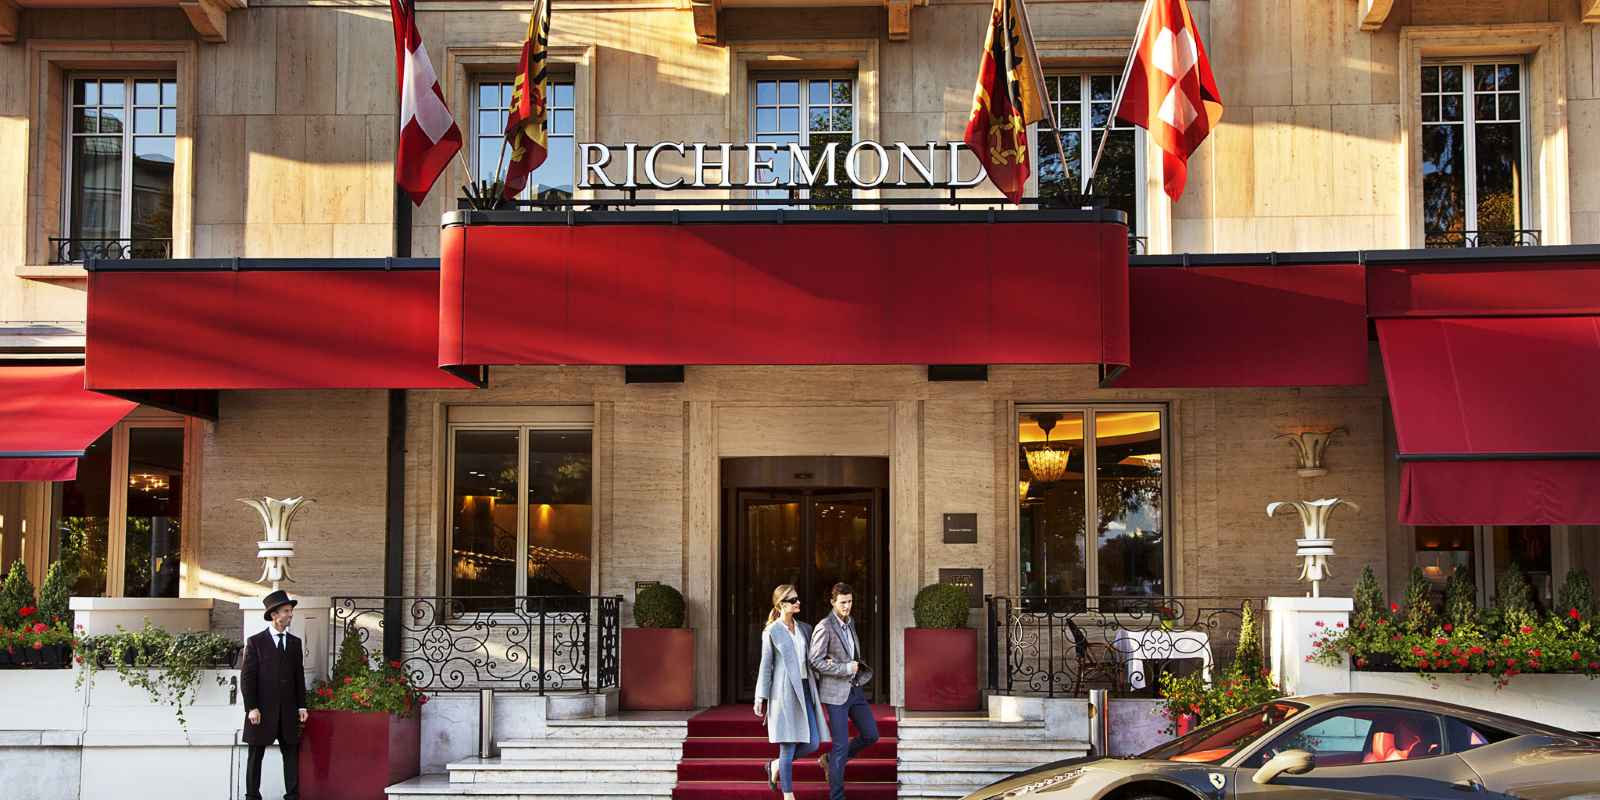 Hotel Richemond in Geneva